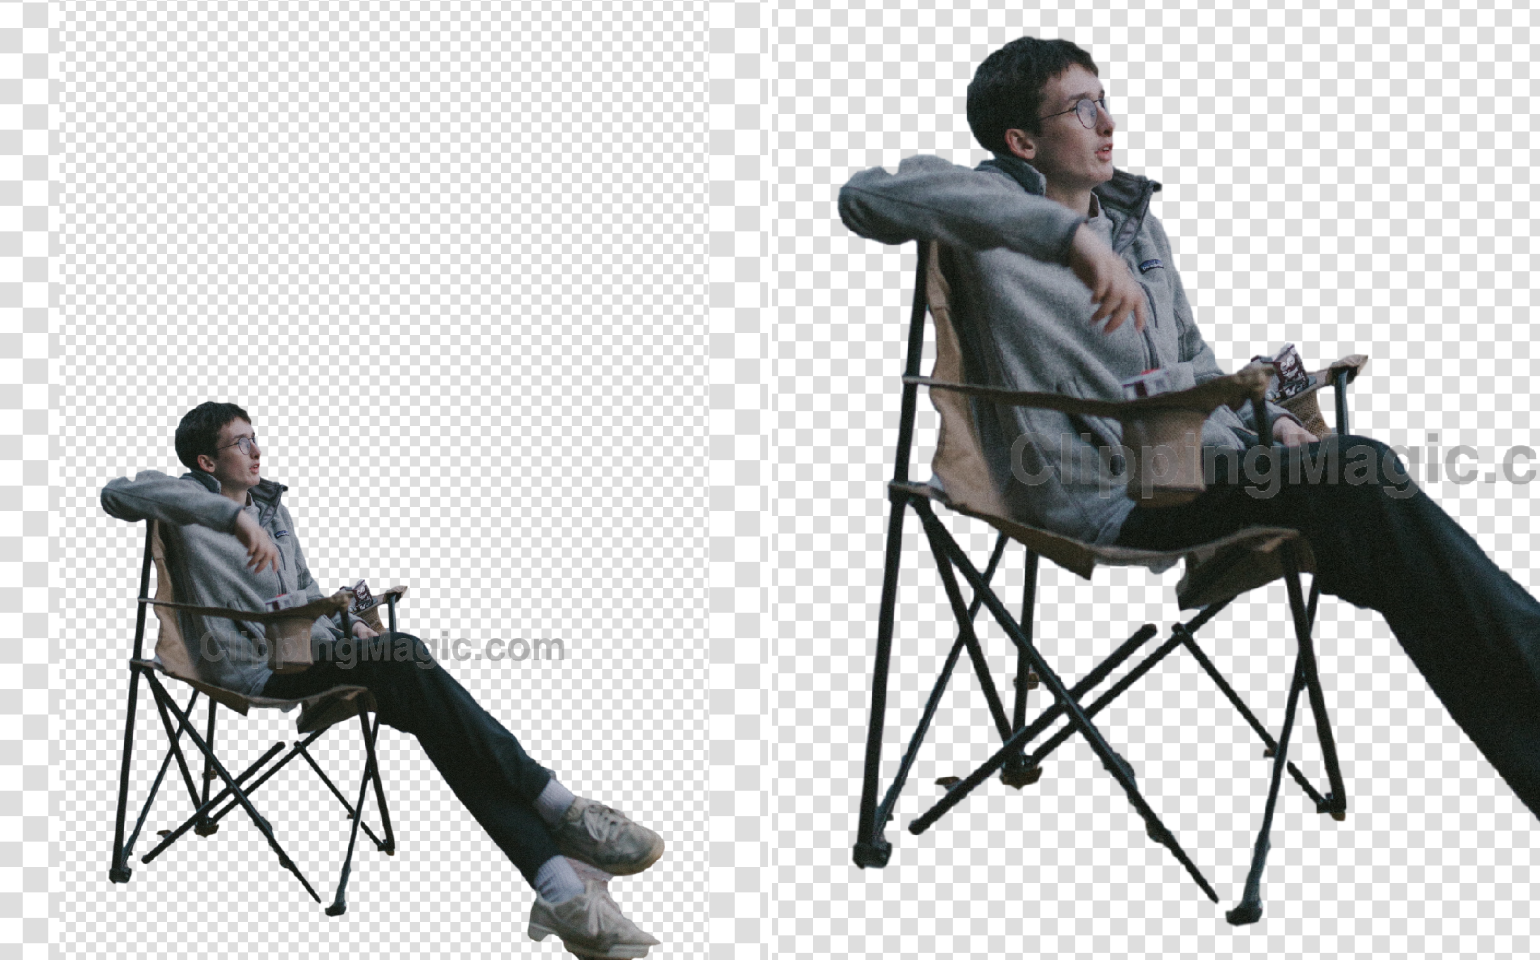 Collage with cut background, the guy in greyish clothes sitting in a camping chair by the lake and his chair close up the result by Clipping Magic